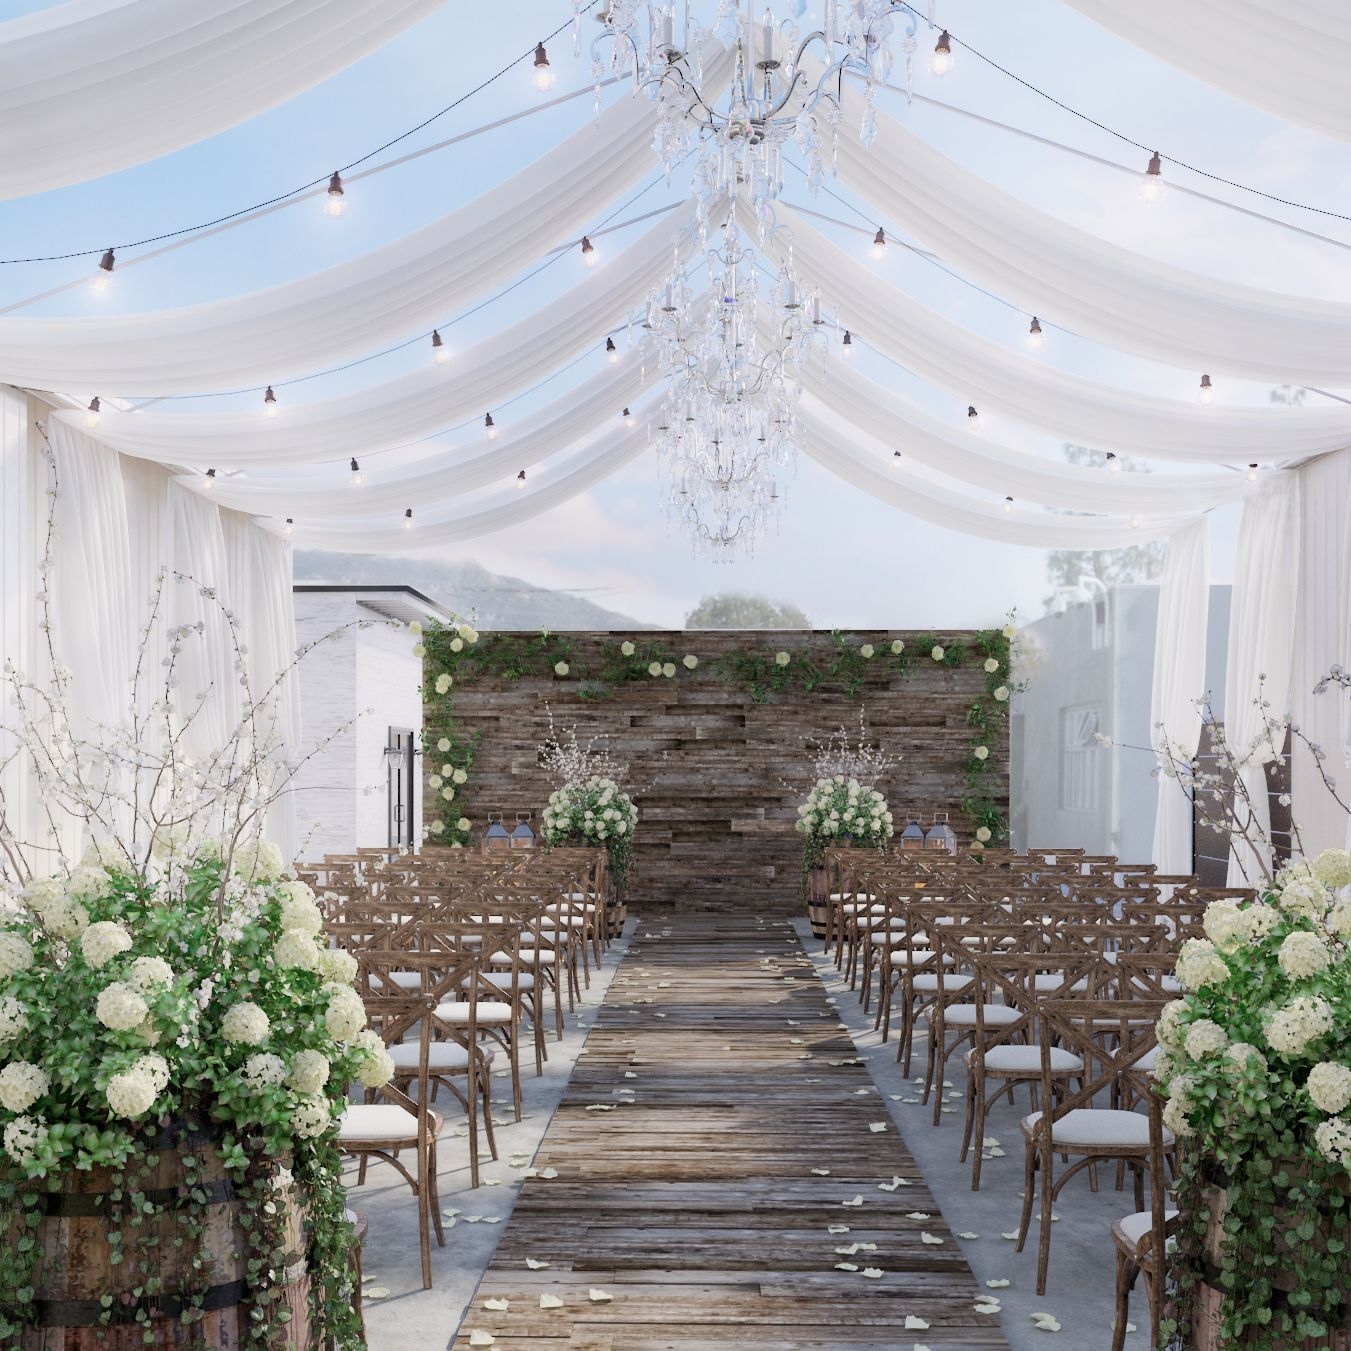 The Garage Burbank Wedding Venue Is A New Chic E You Seriously Have To See